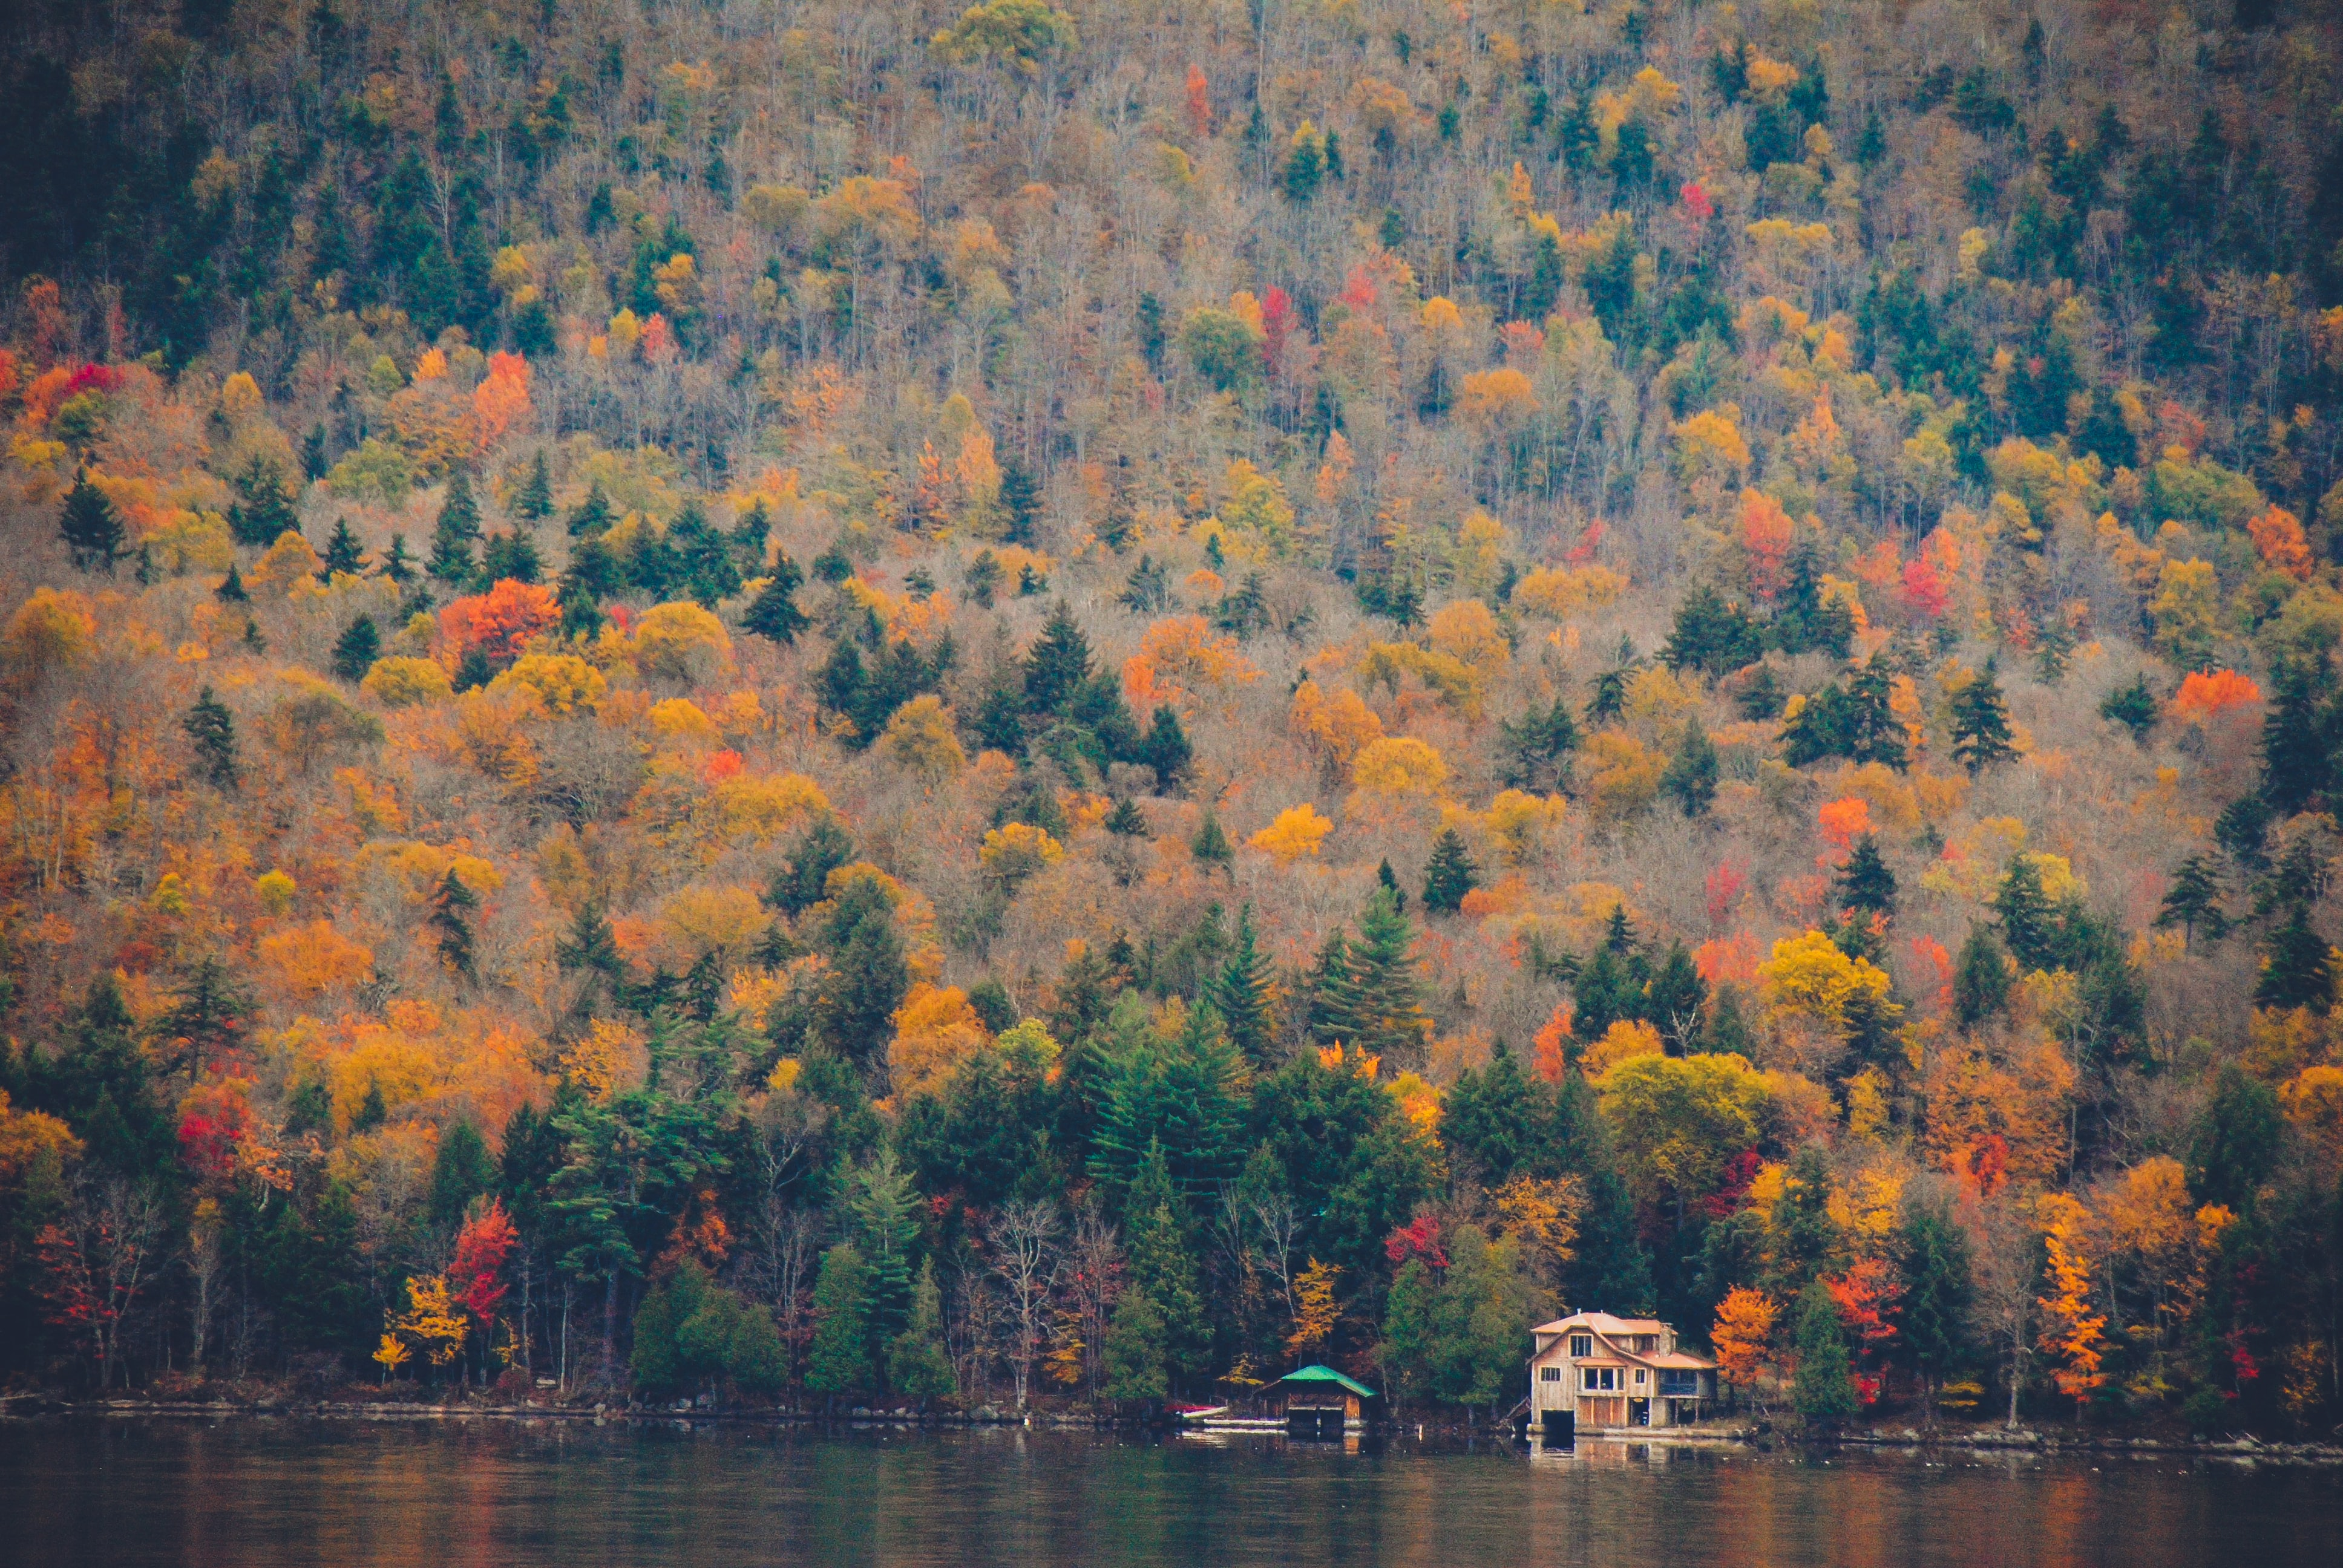 Two wooden buildings in autumn woods on the shore of a lake